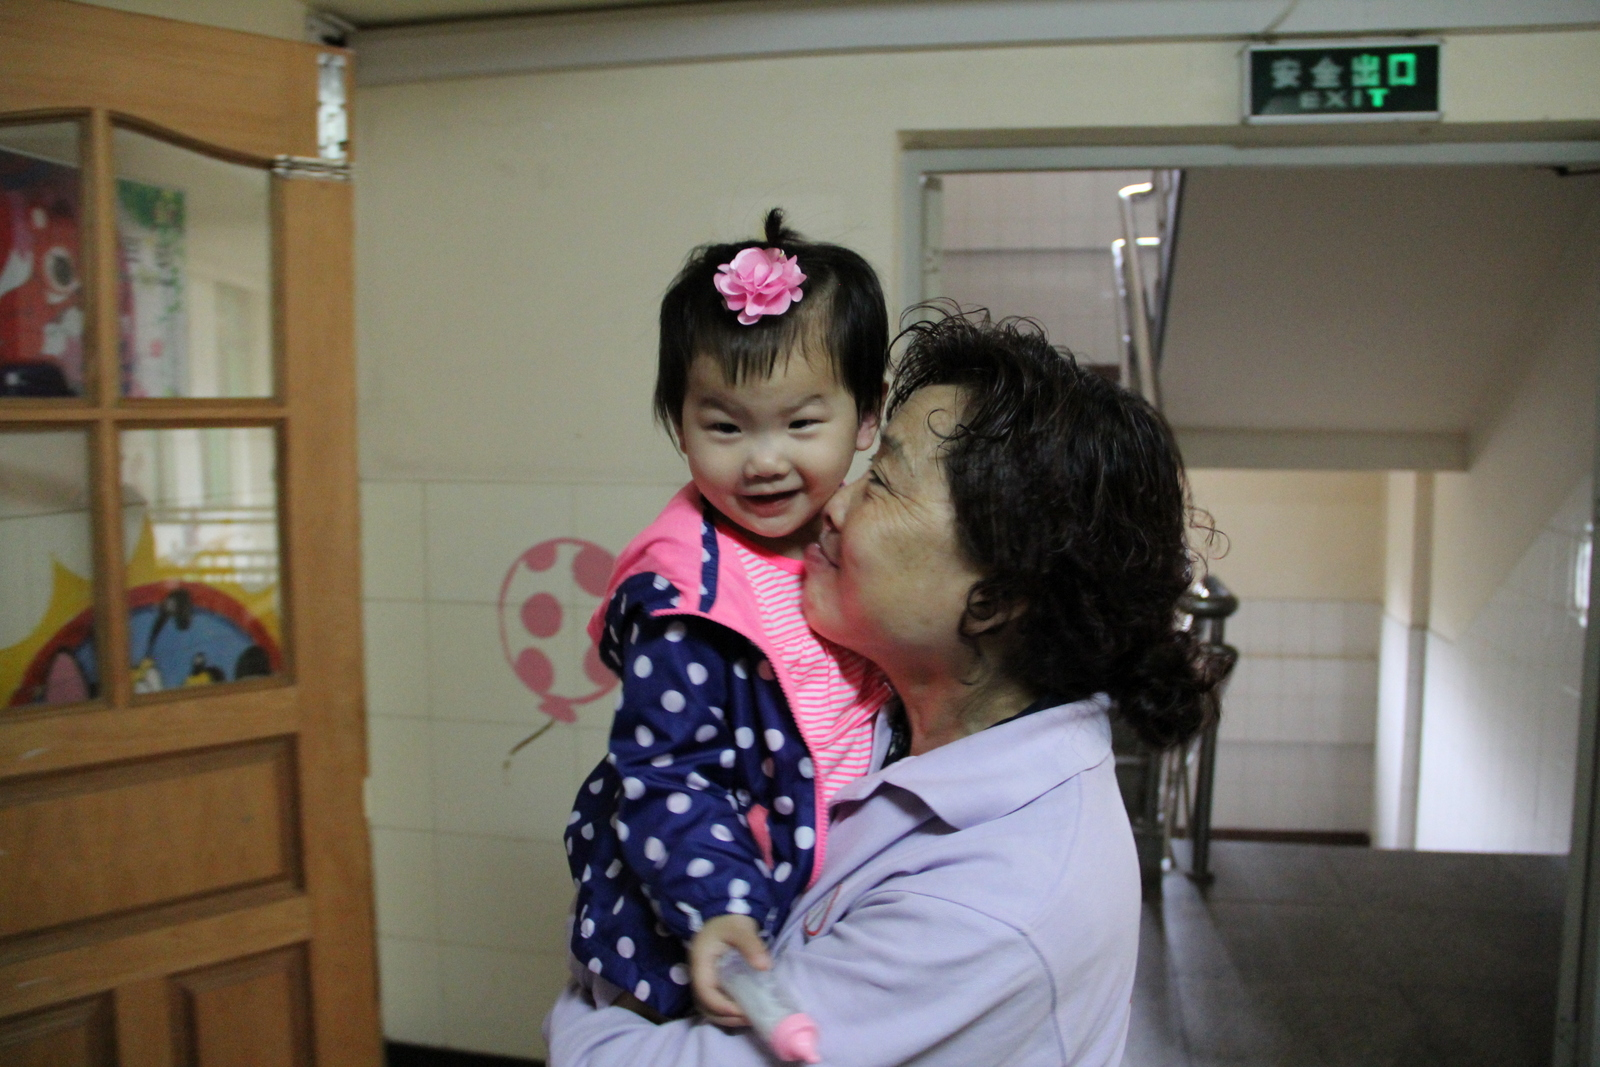 A sweet moment with her nanny.